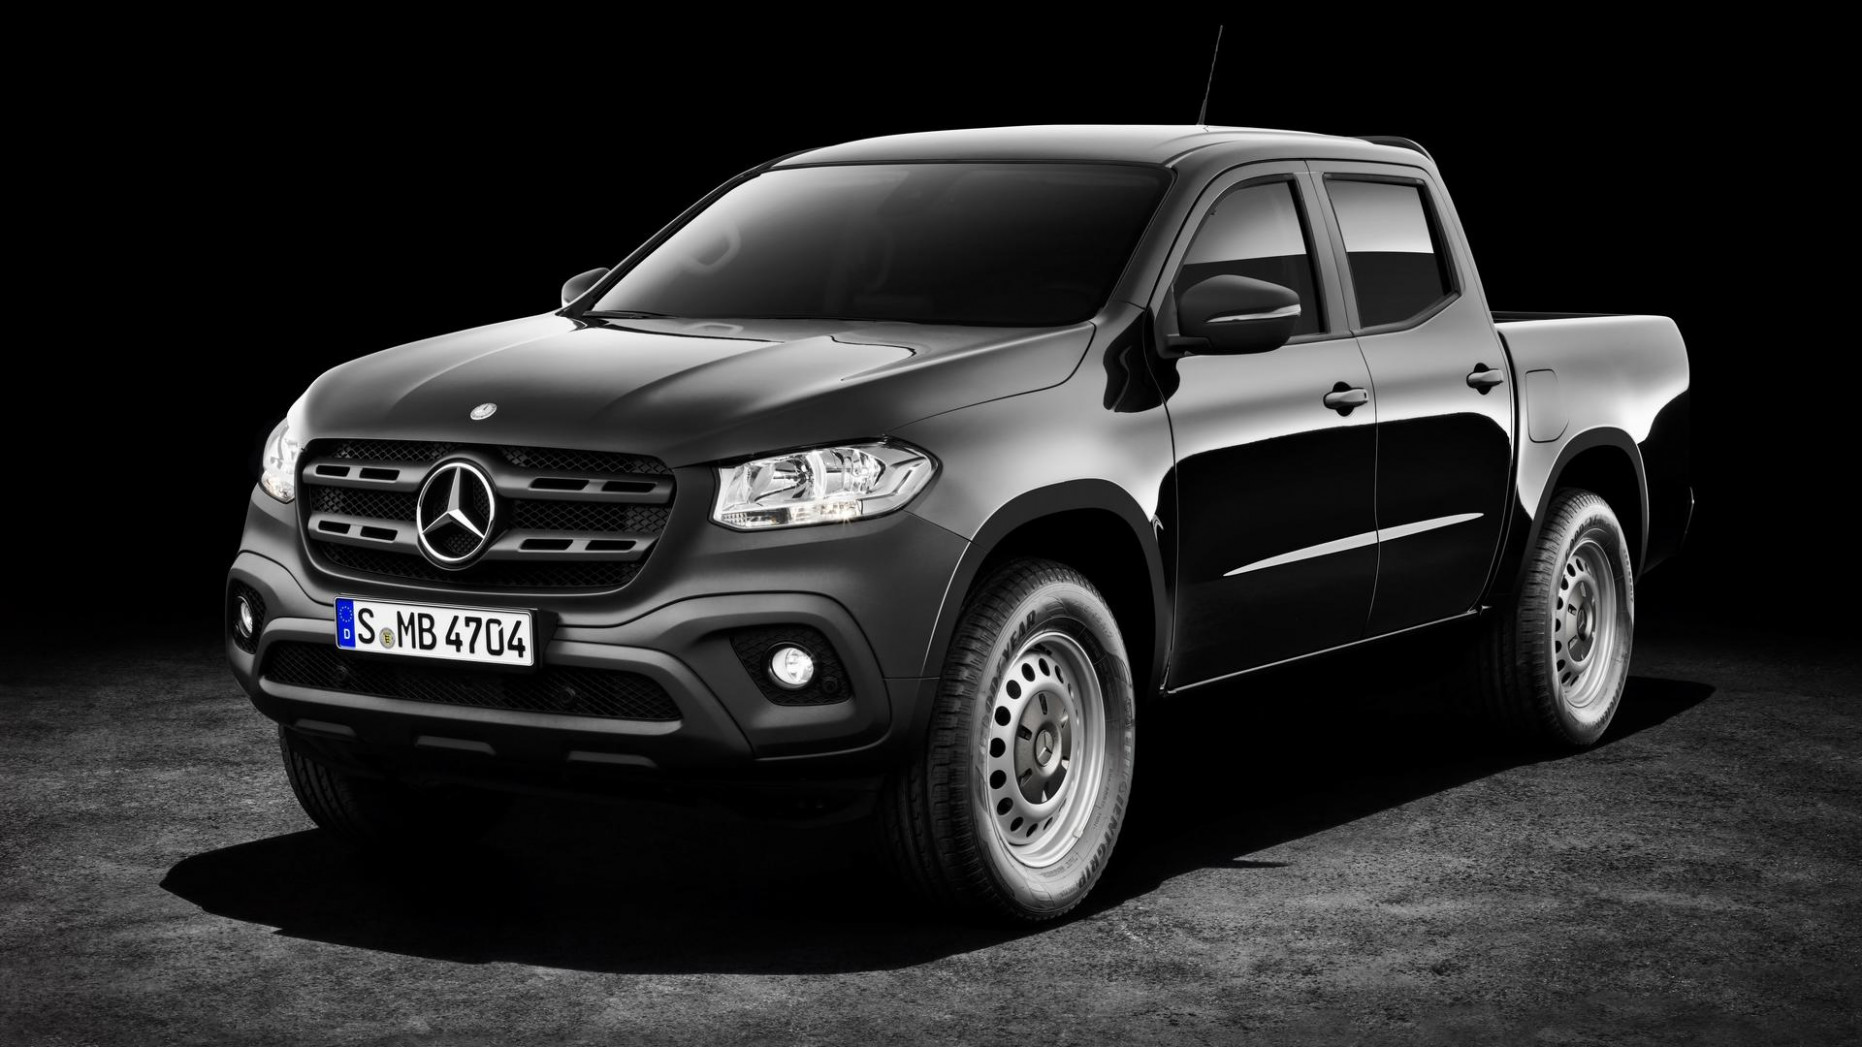 Mercedes X-Class To Be Discontinued, Says Report - 2020 mercedes x class